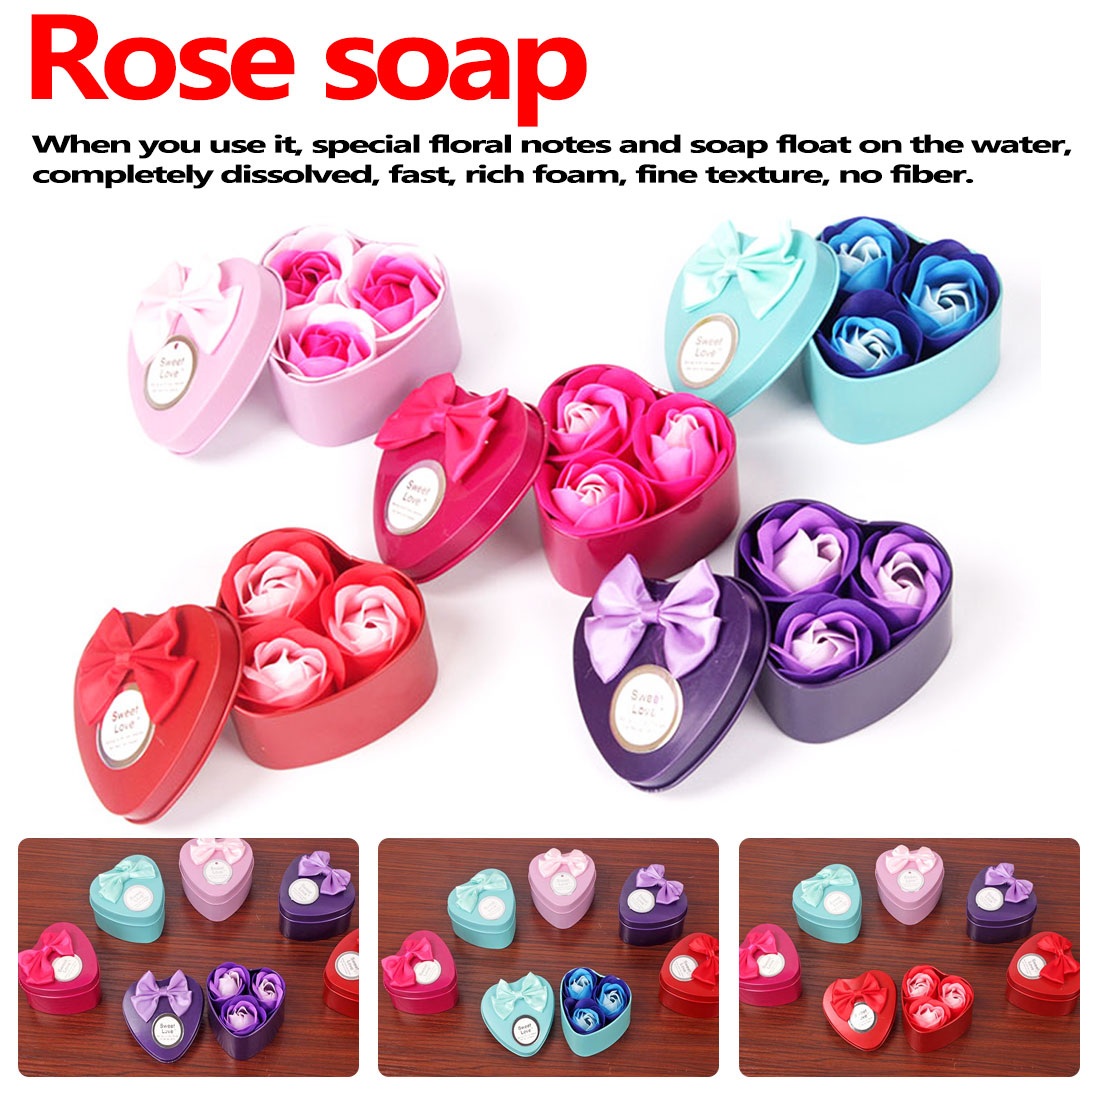 Small Gift Box 3Pcs Artificial Flower Rose Soap Flower Heart-Shaped Iron Box Scented Bath Body Petal Rose